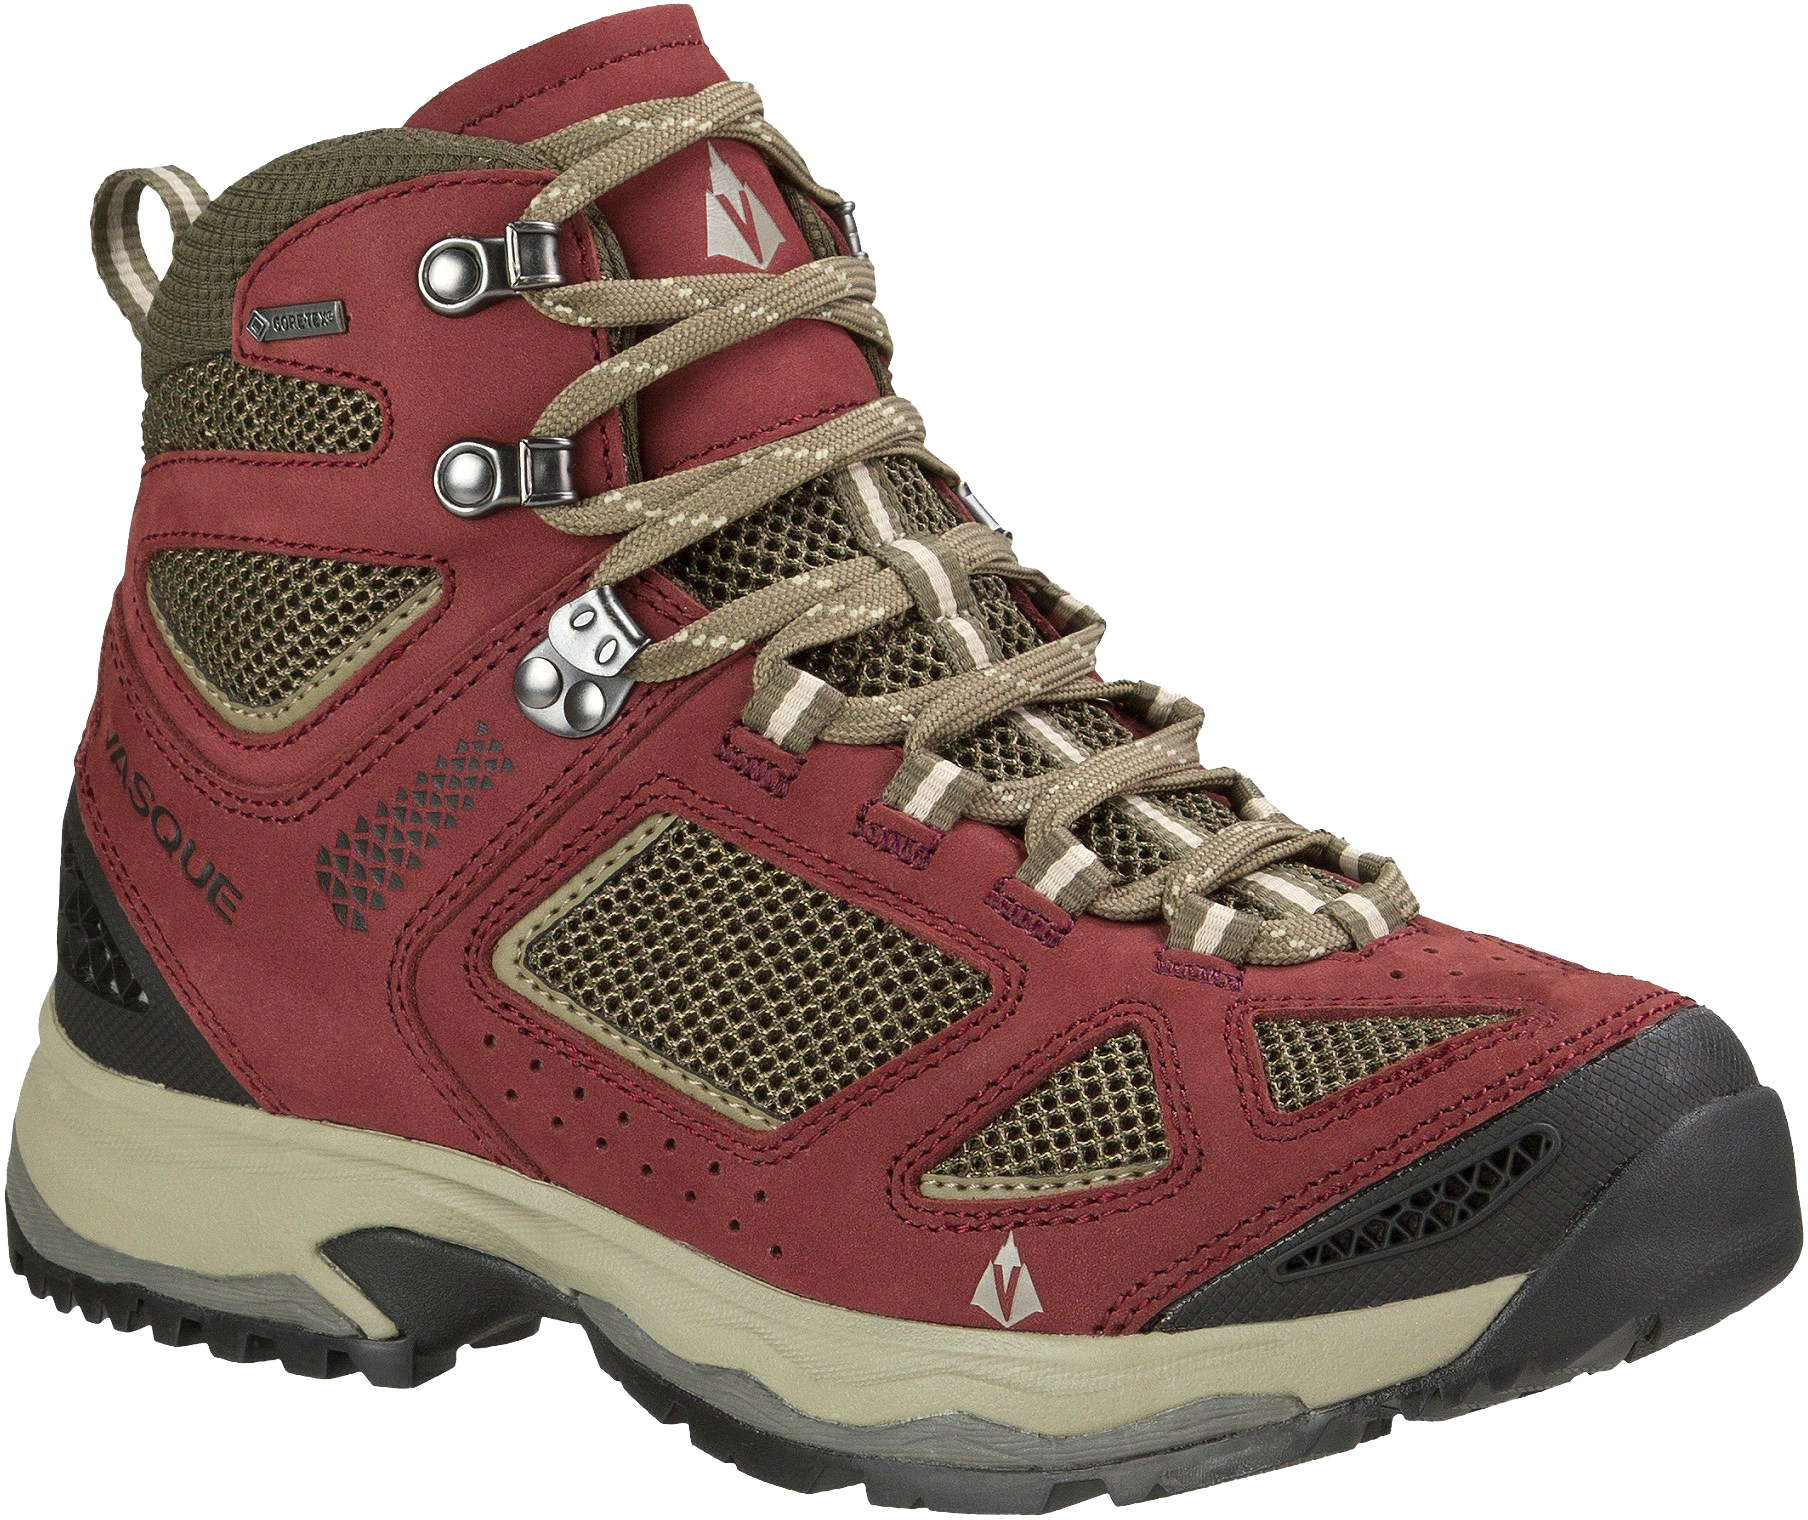 6f442bd582a Hiking boots | MEC